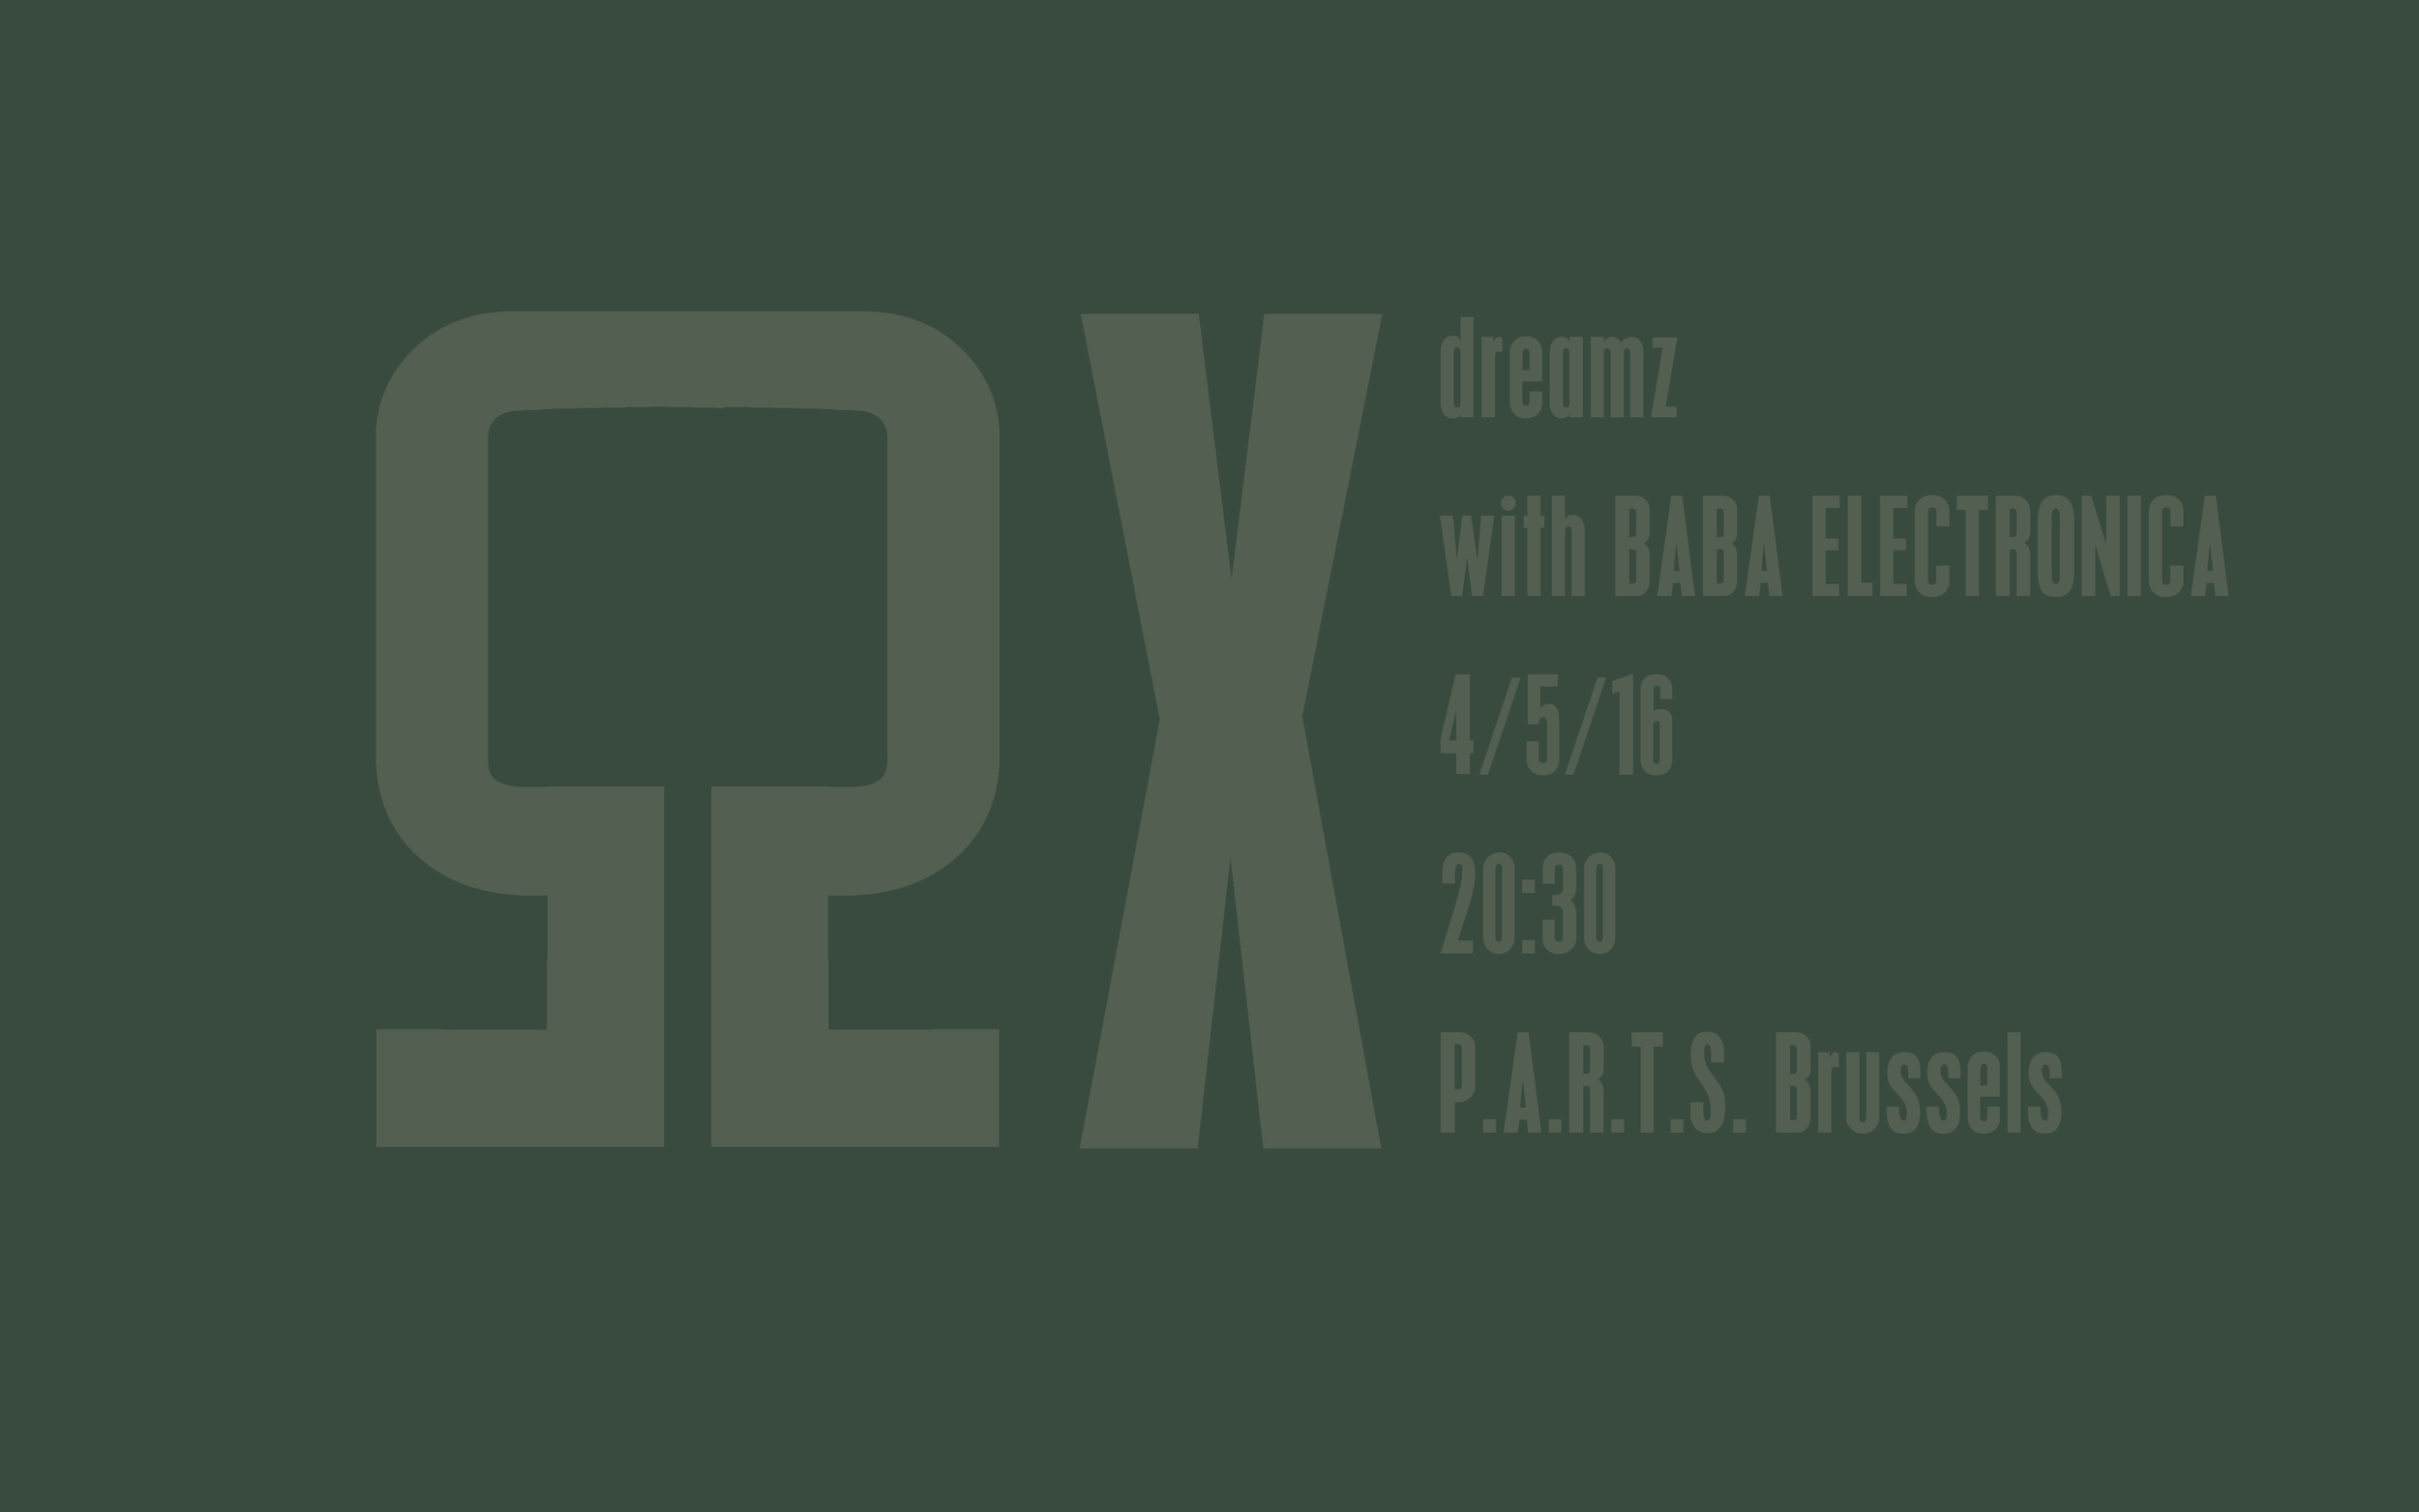 P.A.R.T.S. Research Studios - A series of interventions: ΩX Dreamz with Baba Electronica - Wednesday 4/5 at 20.30